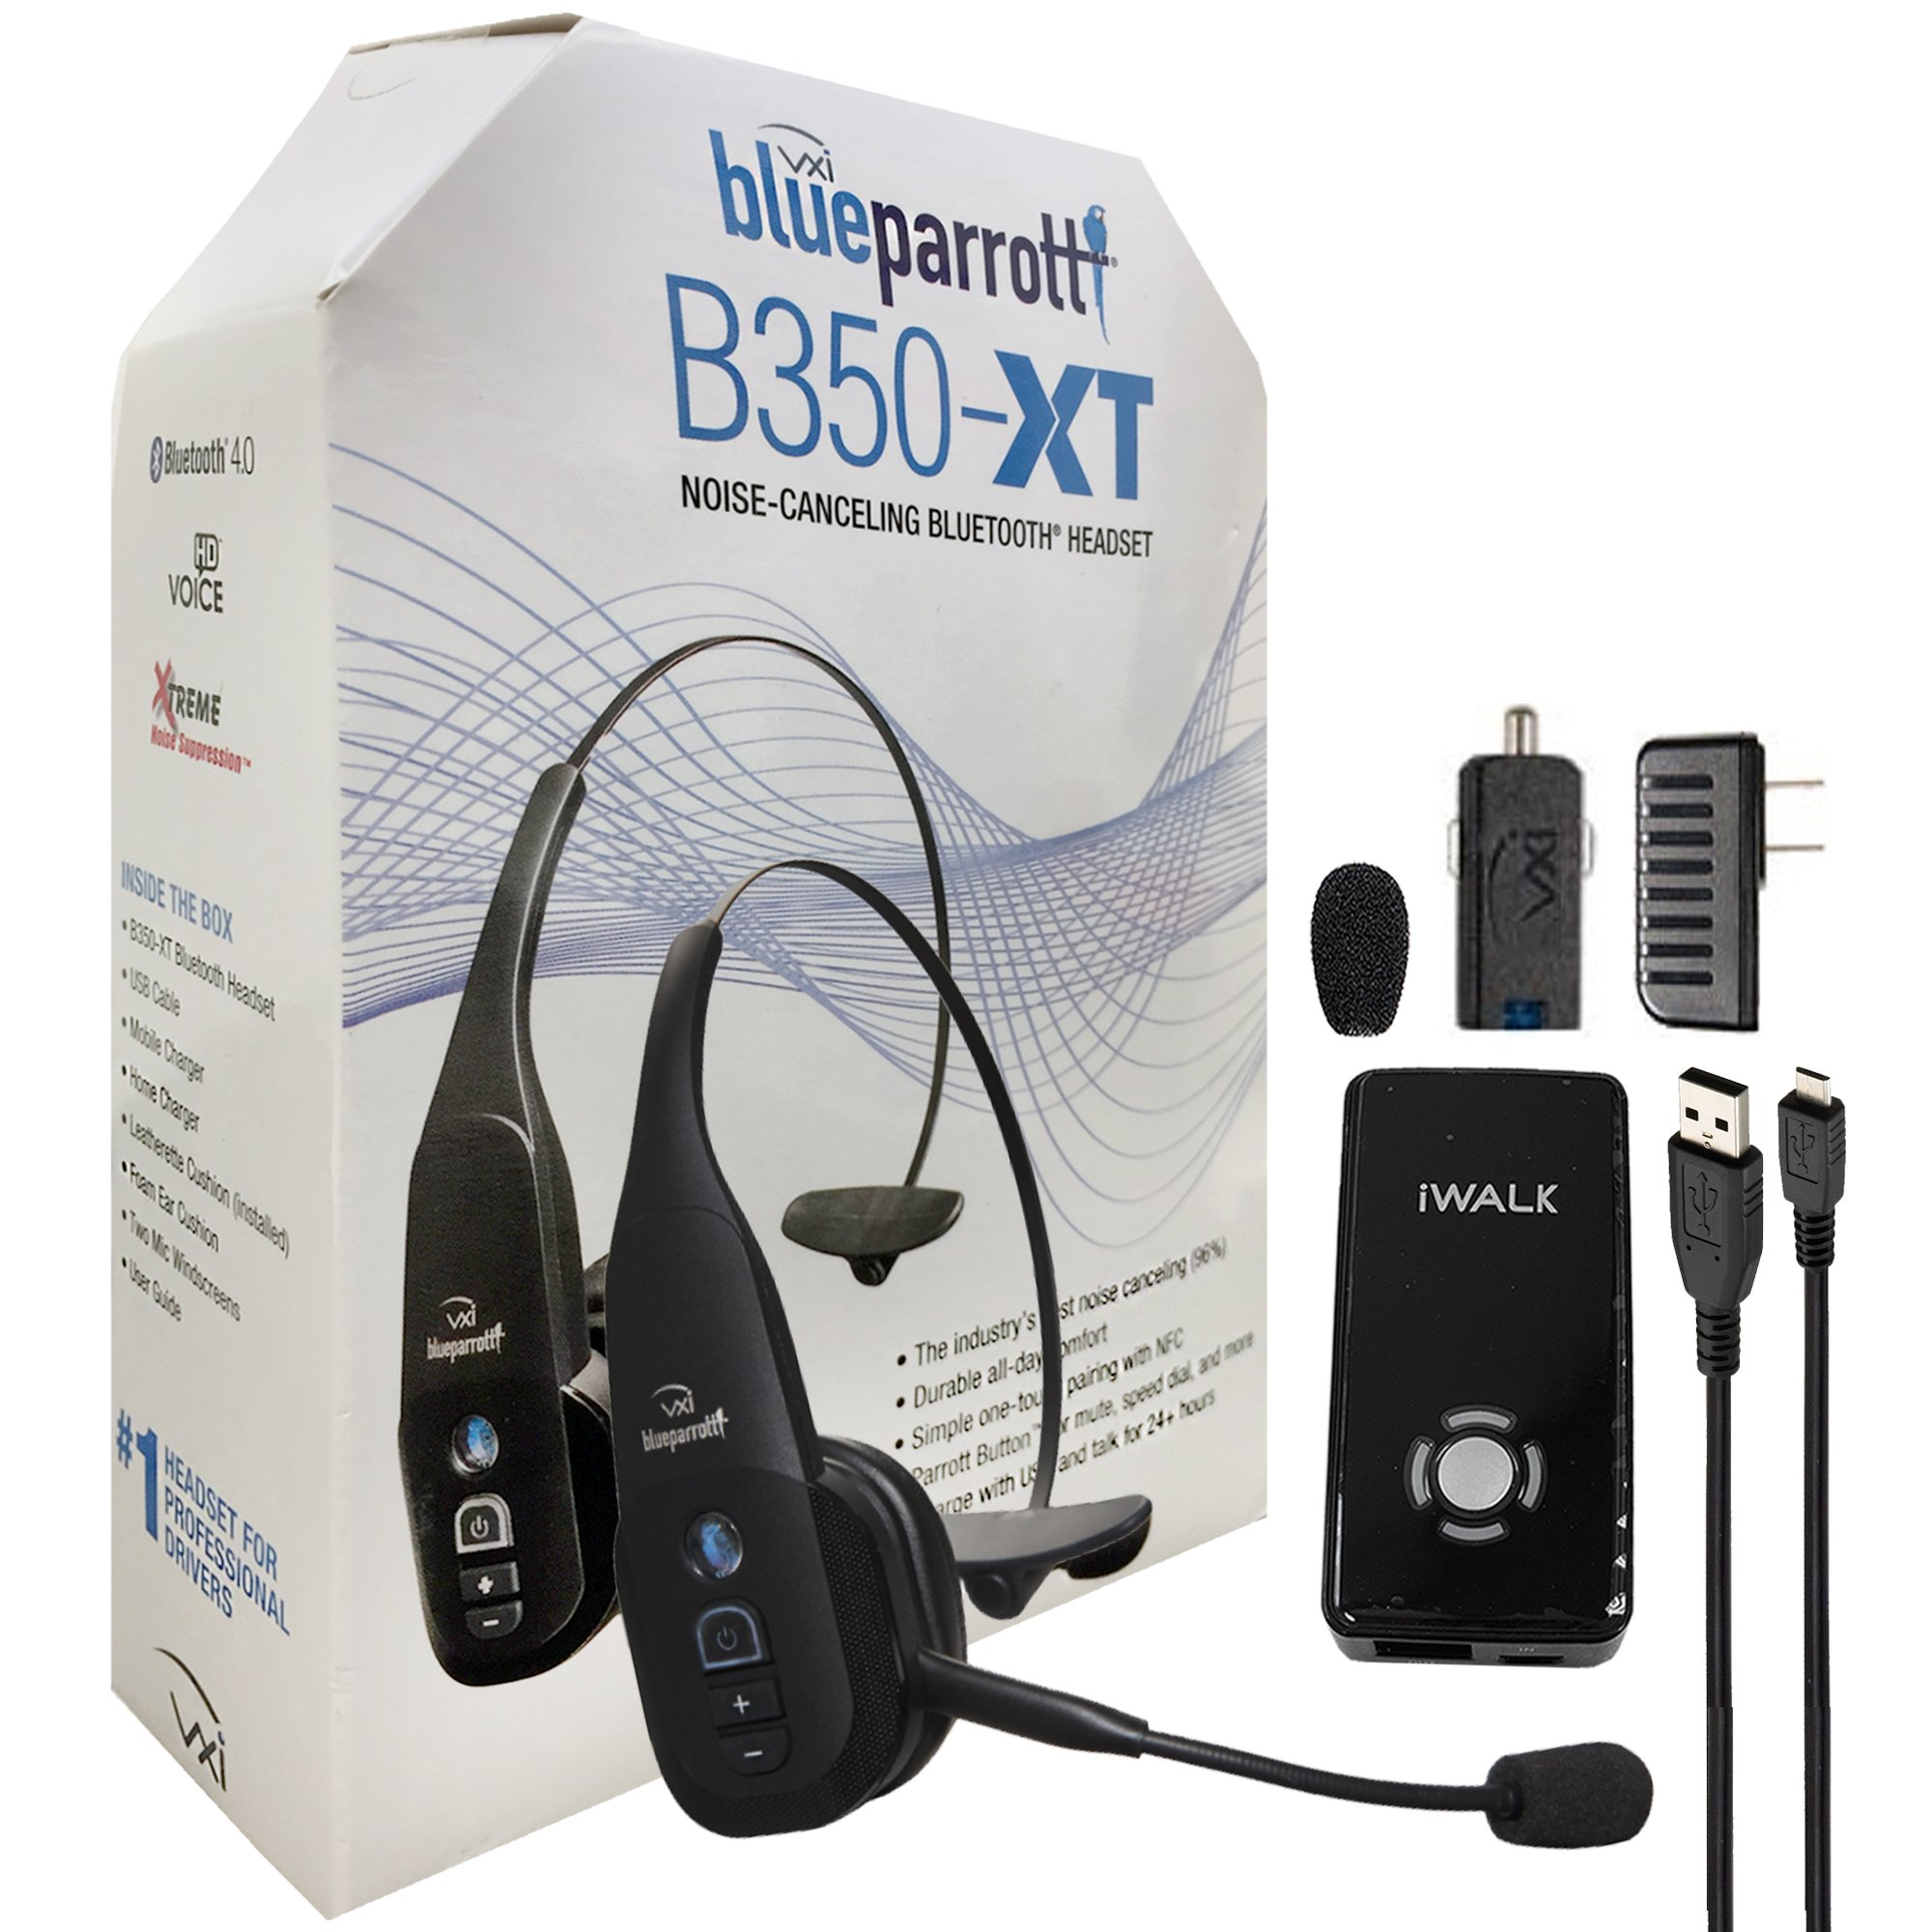 VXi B350-XT 203475 BlueParrott Noise Canceling Bluetooth ''HD'' Headset For iOS & Android - with Home/Car Charger & iWalk Battery Pack Charger (Retail Packing Kit)